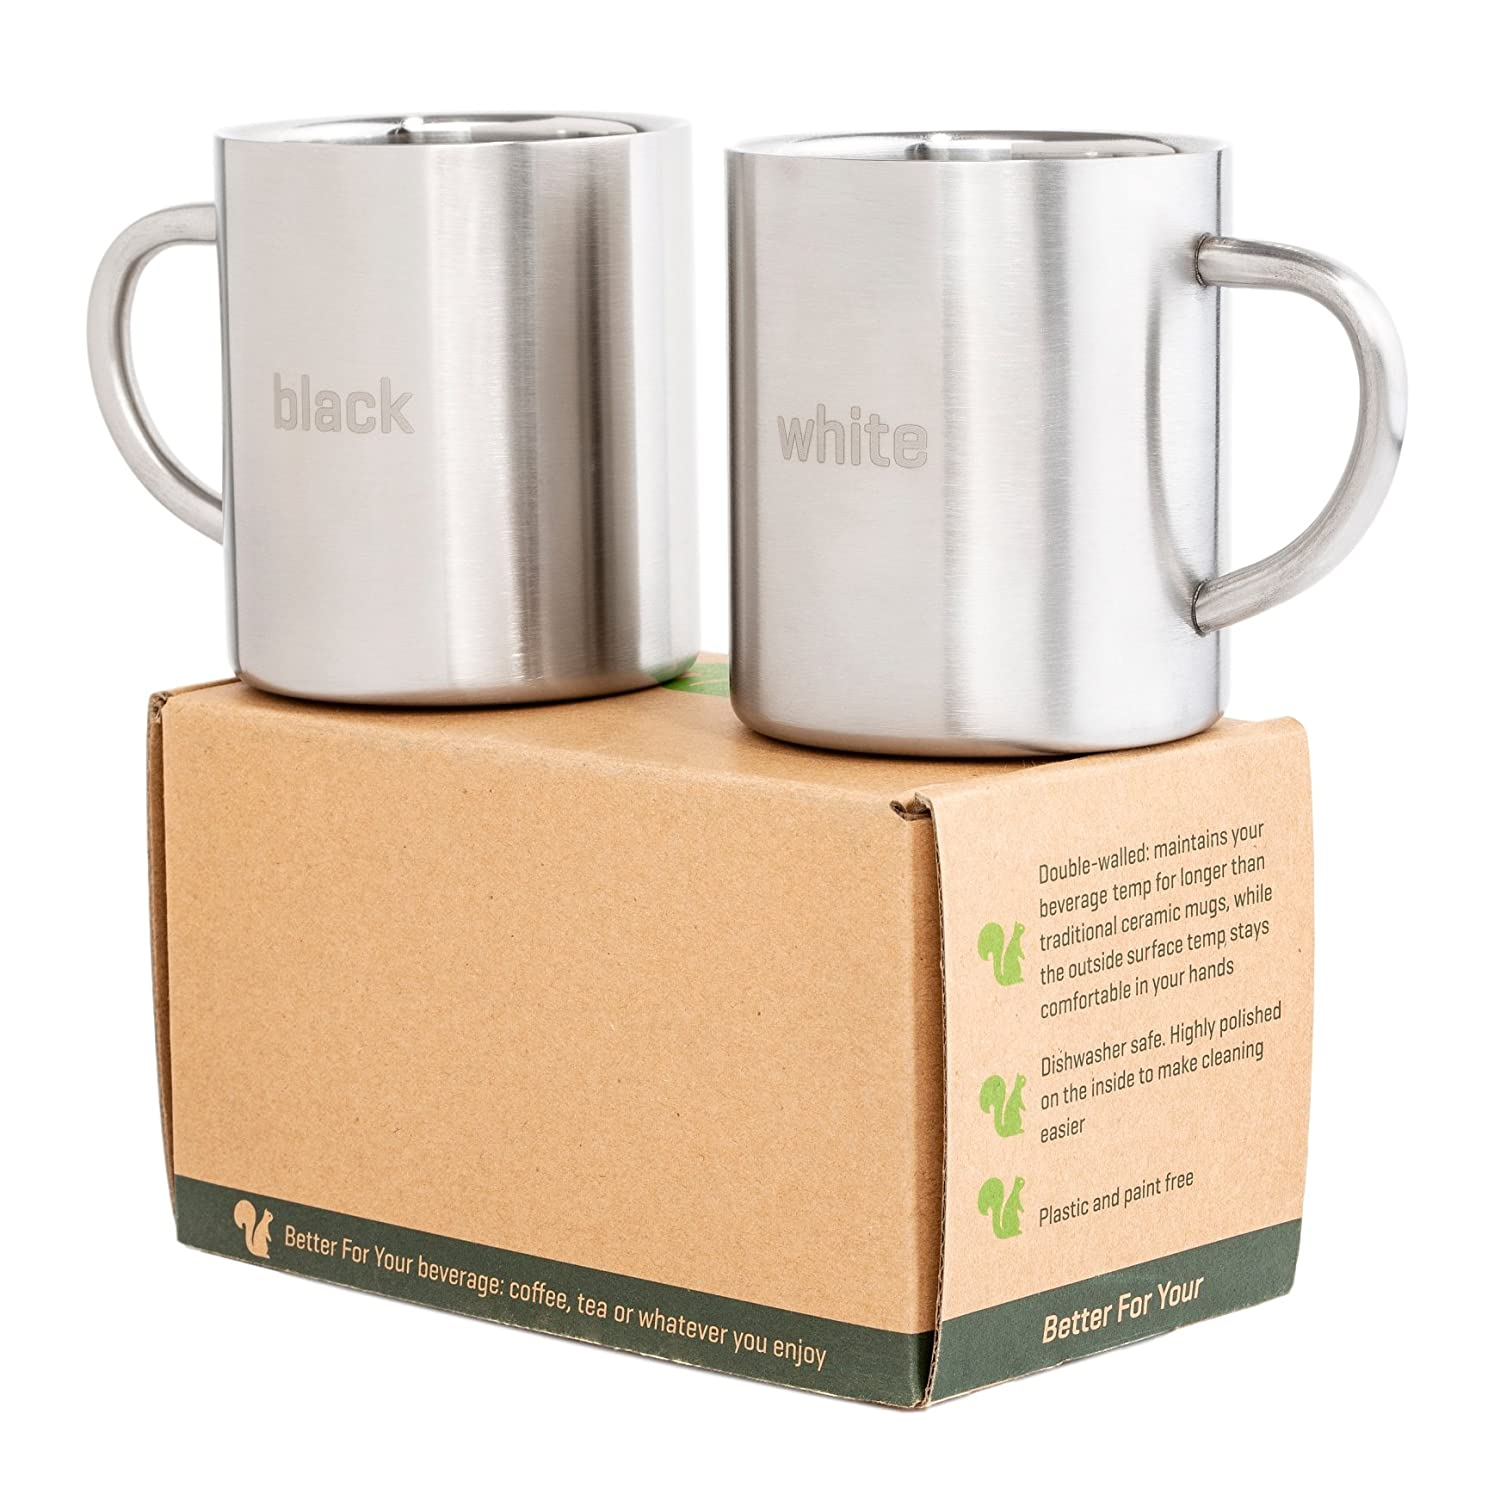 Stainless Steel Coffee Mugs Camping - Double Wall BPA free 13.5oz Metal Coffee Mug - Tea Cup with Handle, Fits Popular Coffee Machines - Shatterproof Set of 2 Cups with Laser Words Black & White Better For Your DWC-400-BR-BK-WH